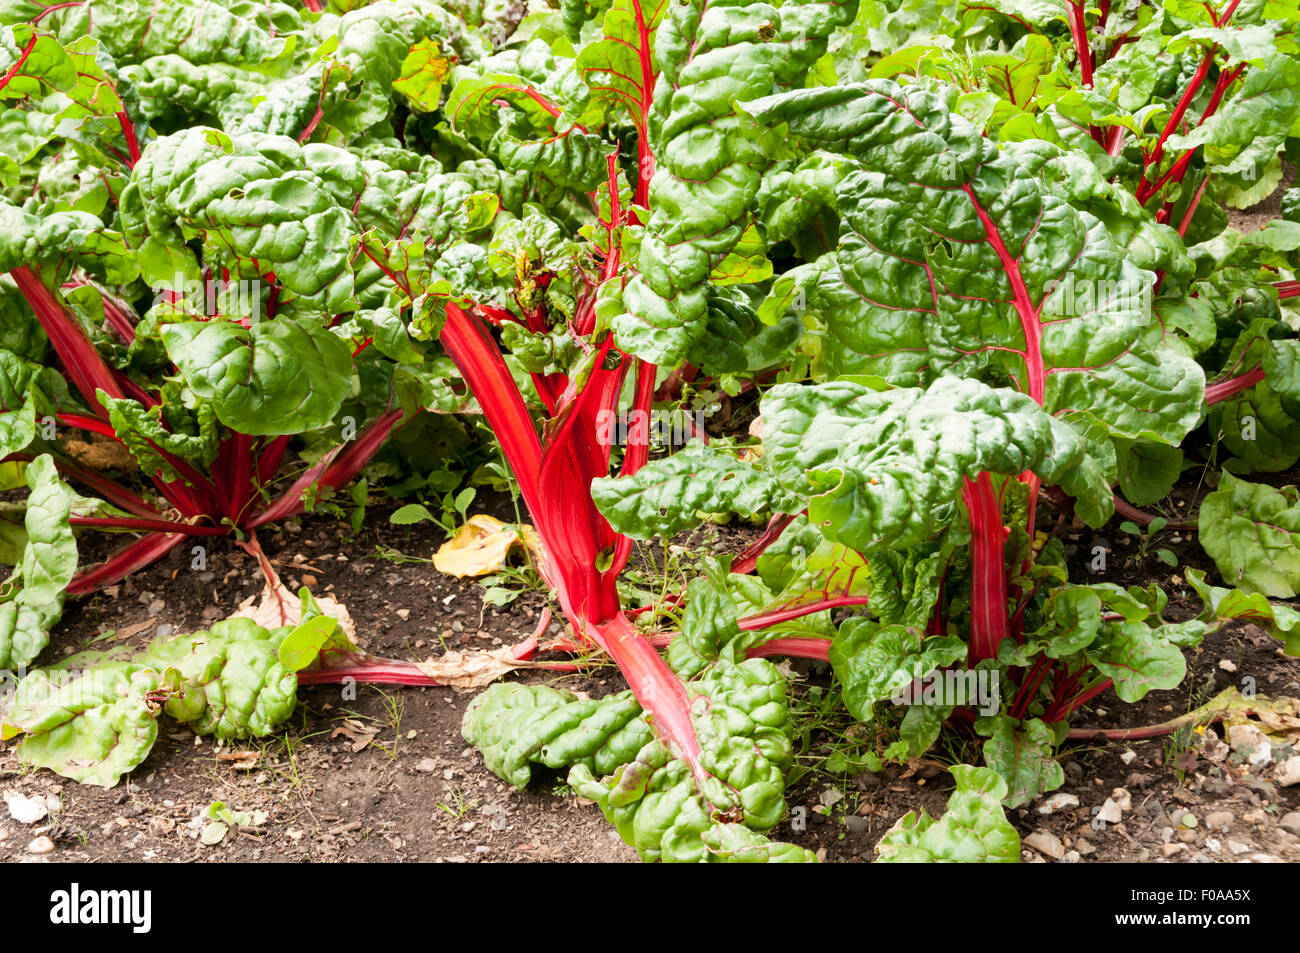 Rhubarb chard (Beta vulgaris) growing in a garden allotment, with characteristic bright red-ribbed leaves and stalk. - Stock Image